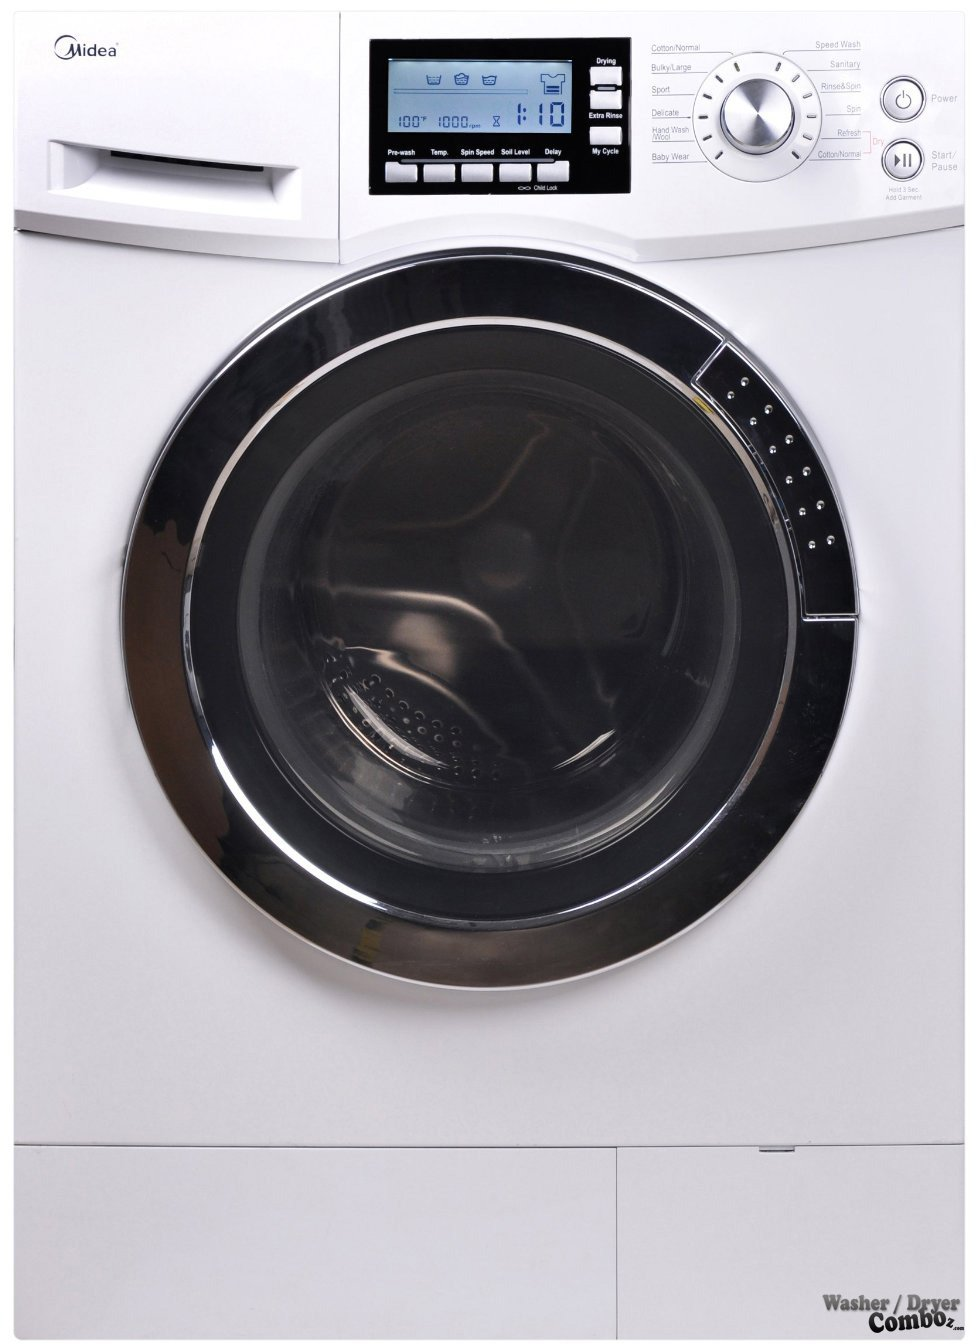 Washer and dryer in one! Image from www.washerdryercomboz.com